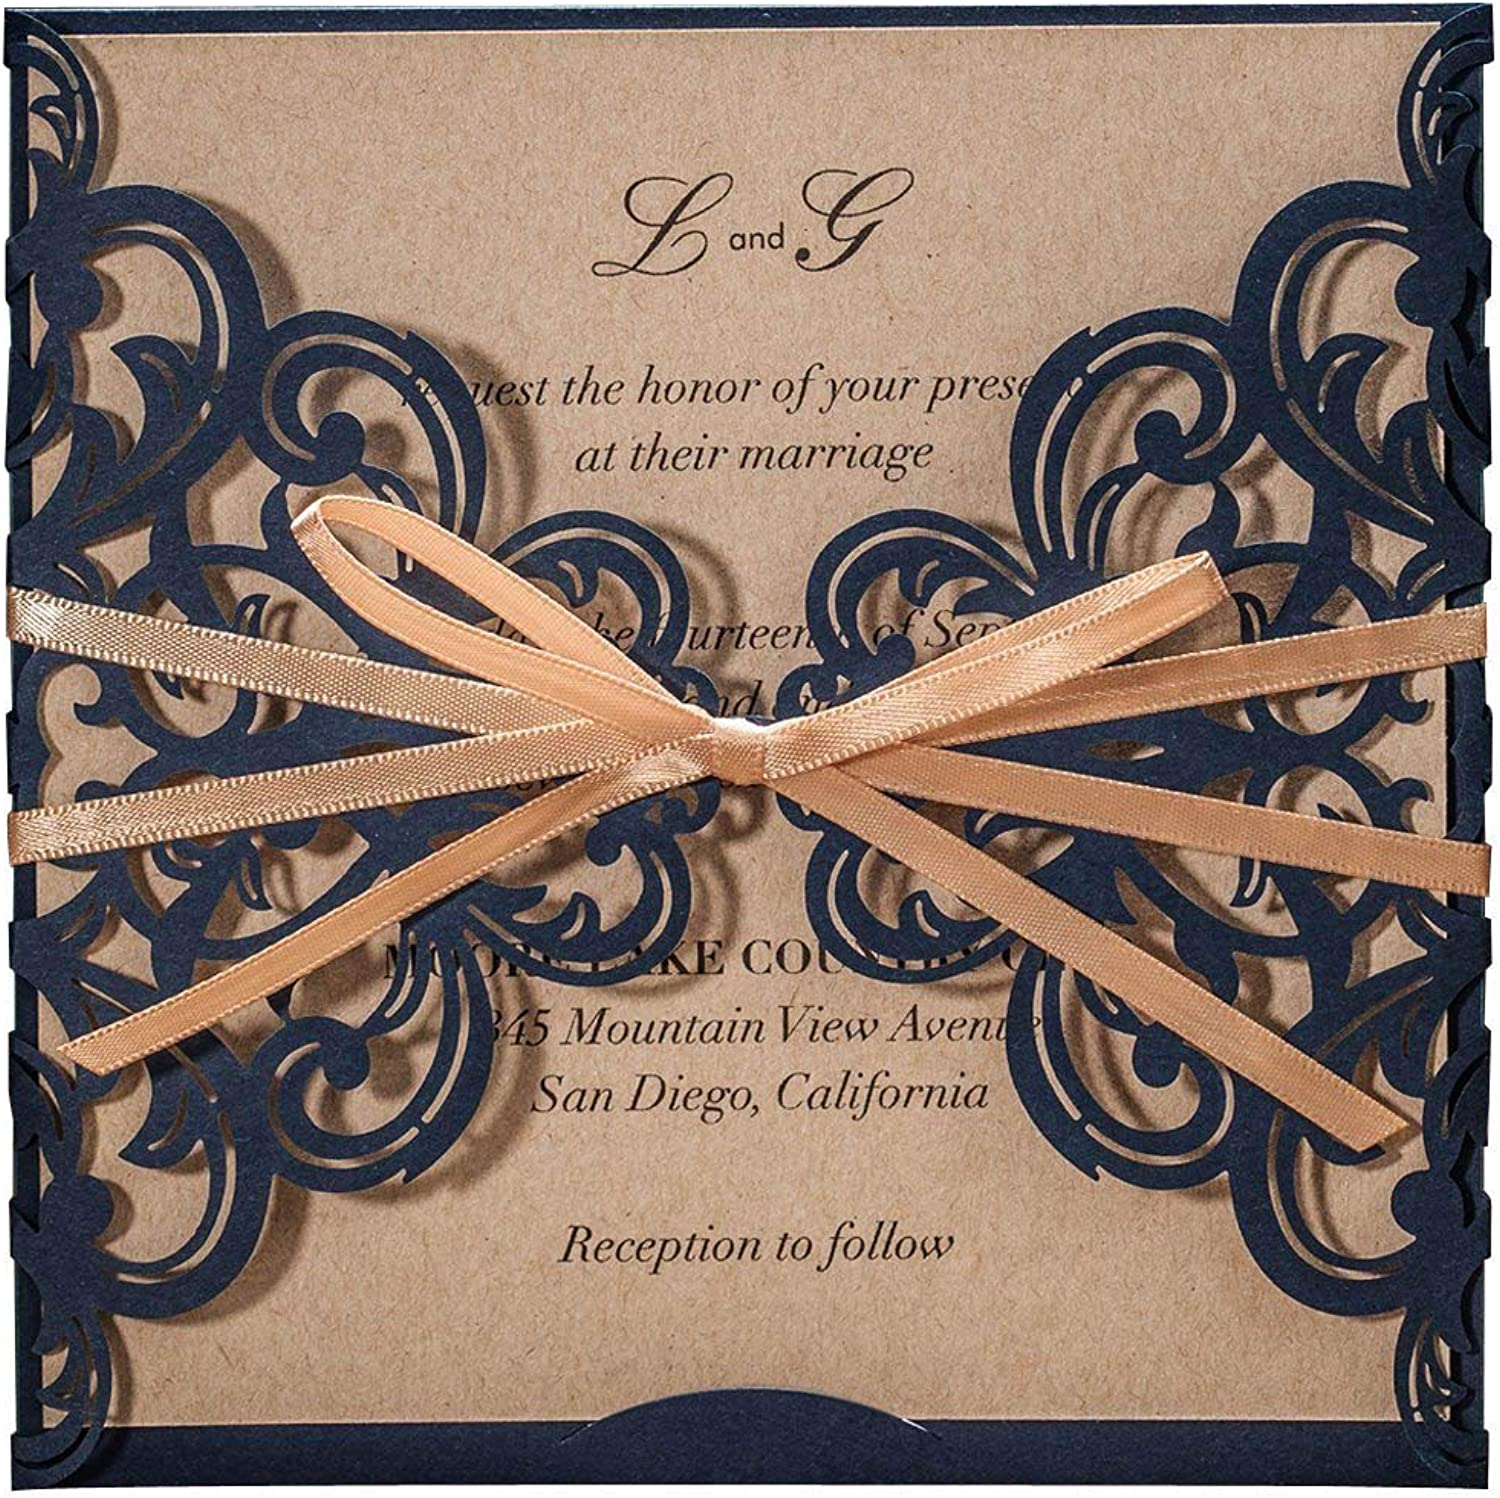 WISHMADE Wedding Invitations Cards 50X Laser Cut Rustic Navy bluee Square Invitations with Bow Lace Sleeve for Engagement Baby Bridal Shower Birthday Quinceanera CW6175B